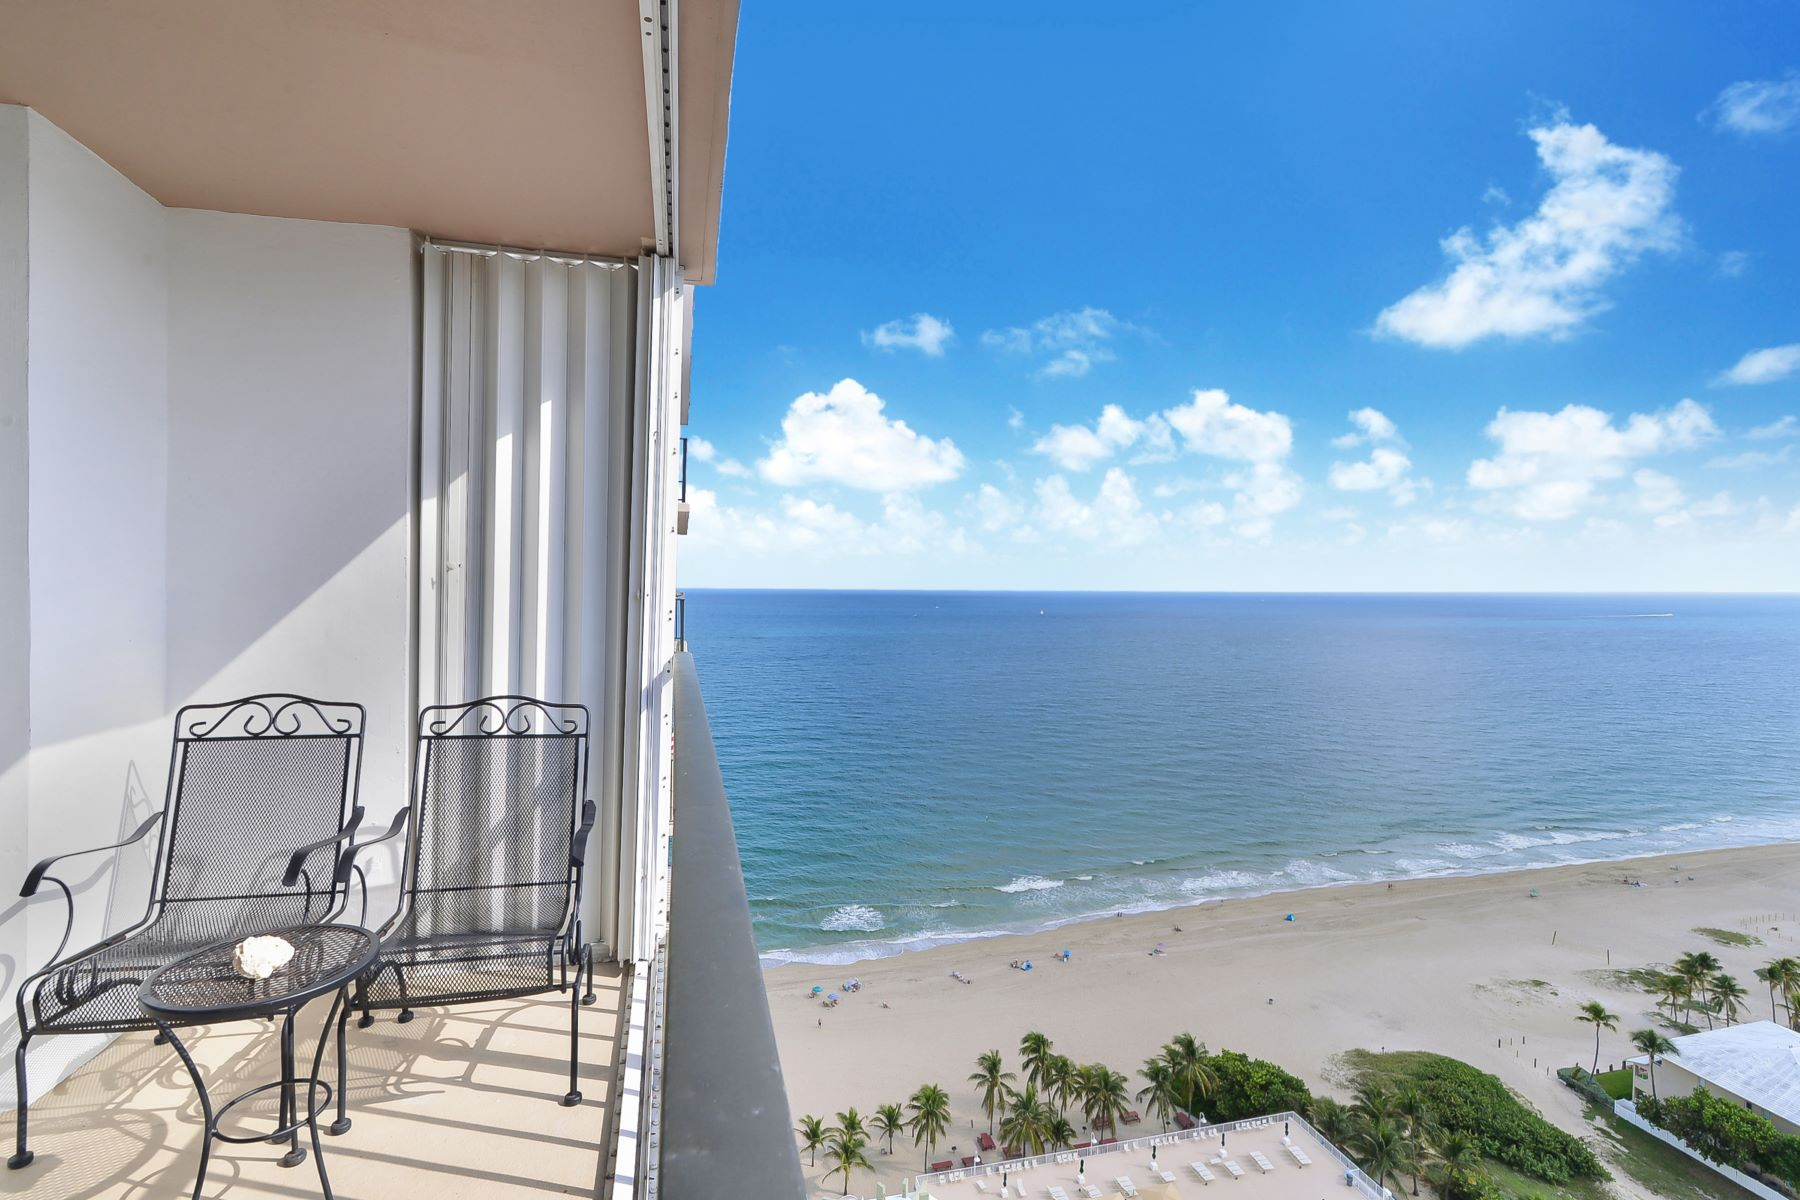 Condominiums for Sale at 101 Briny Ave 2804 Pompano Beach, Florida 33062 United States